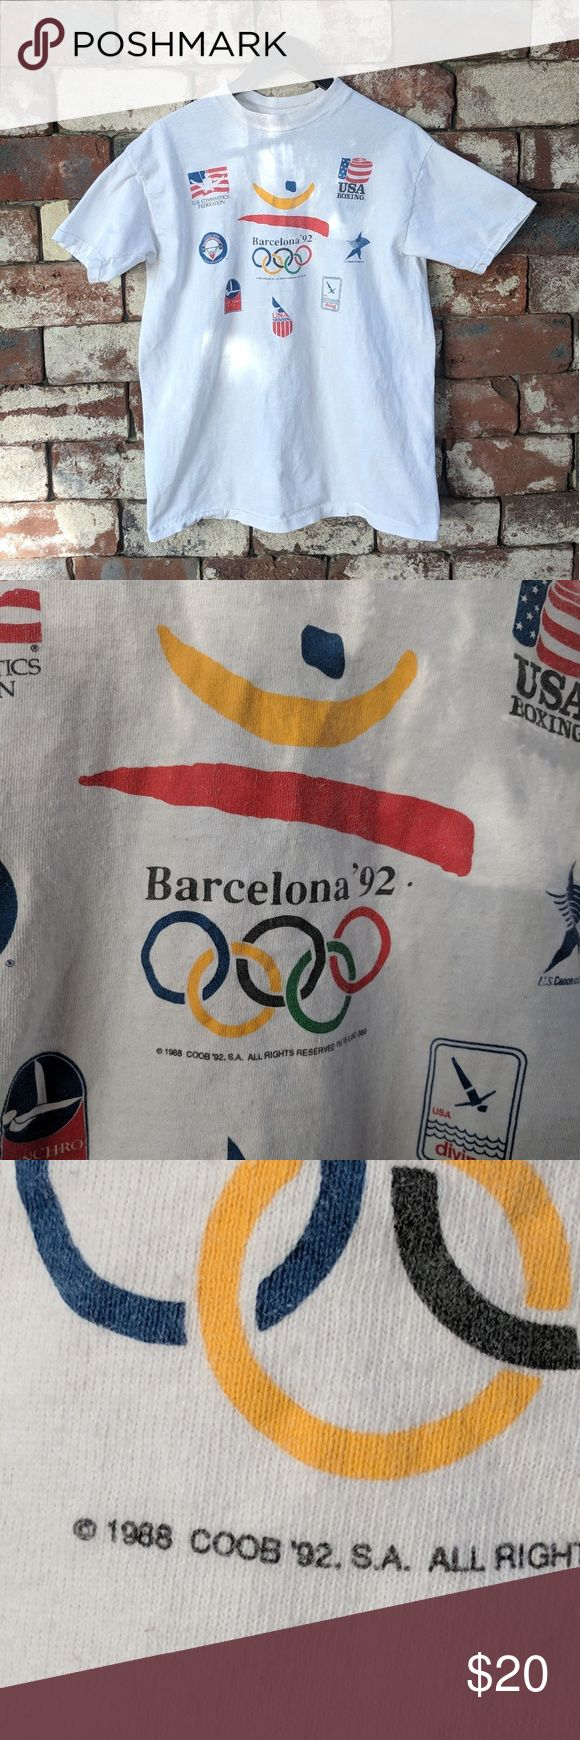 Vintage Barcelona '92 Olympics t-shirt Vintage Barcelona '92 Olympics t-shirt Team USA Size XL Tagged 1988 Made in USA   #olymlics #barcelona #spain #1992 #90s #vintage #80s #1988 #goldmedal #silver #bronze #teamusa #gymnastics #boxing #swimming #diving #weightlifting Shirts Tees - Short Sleeve